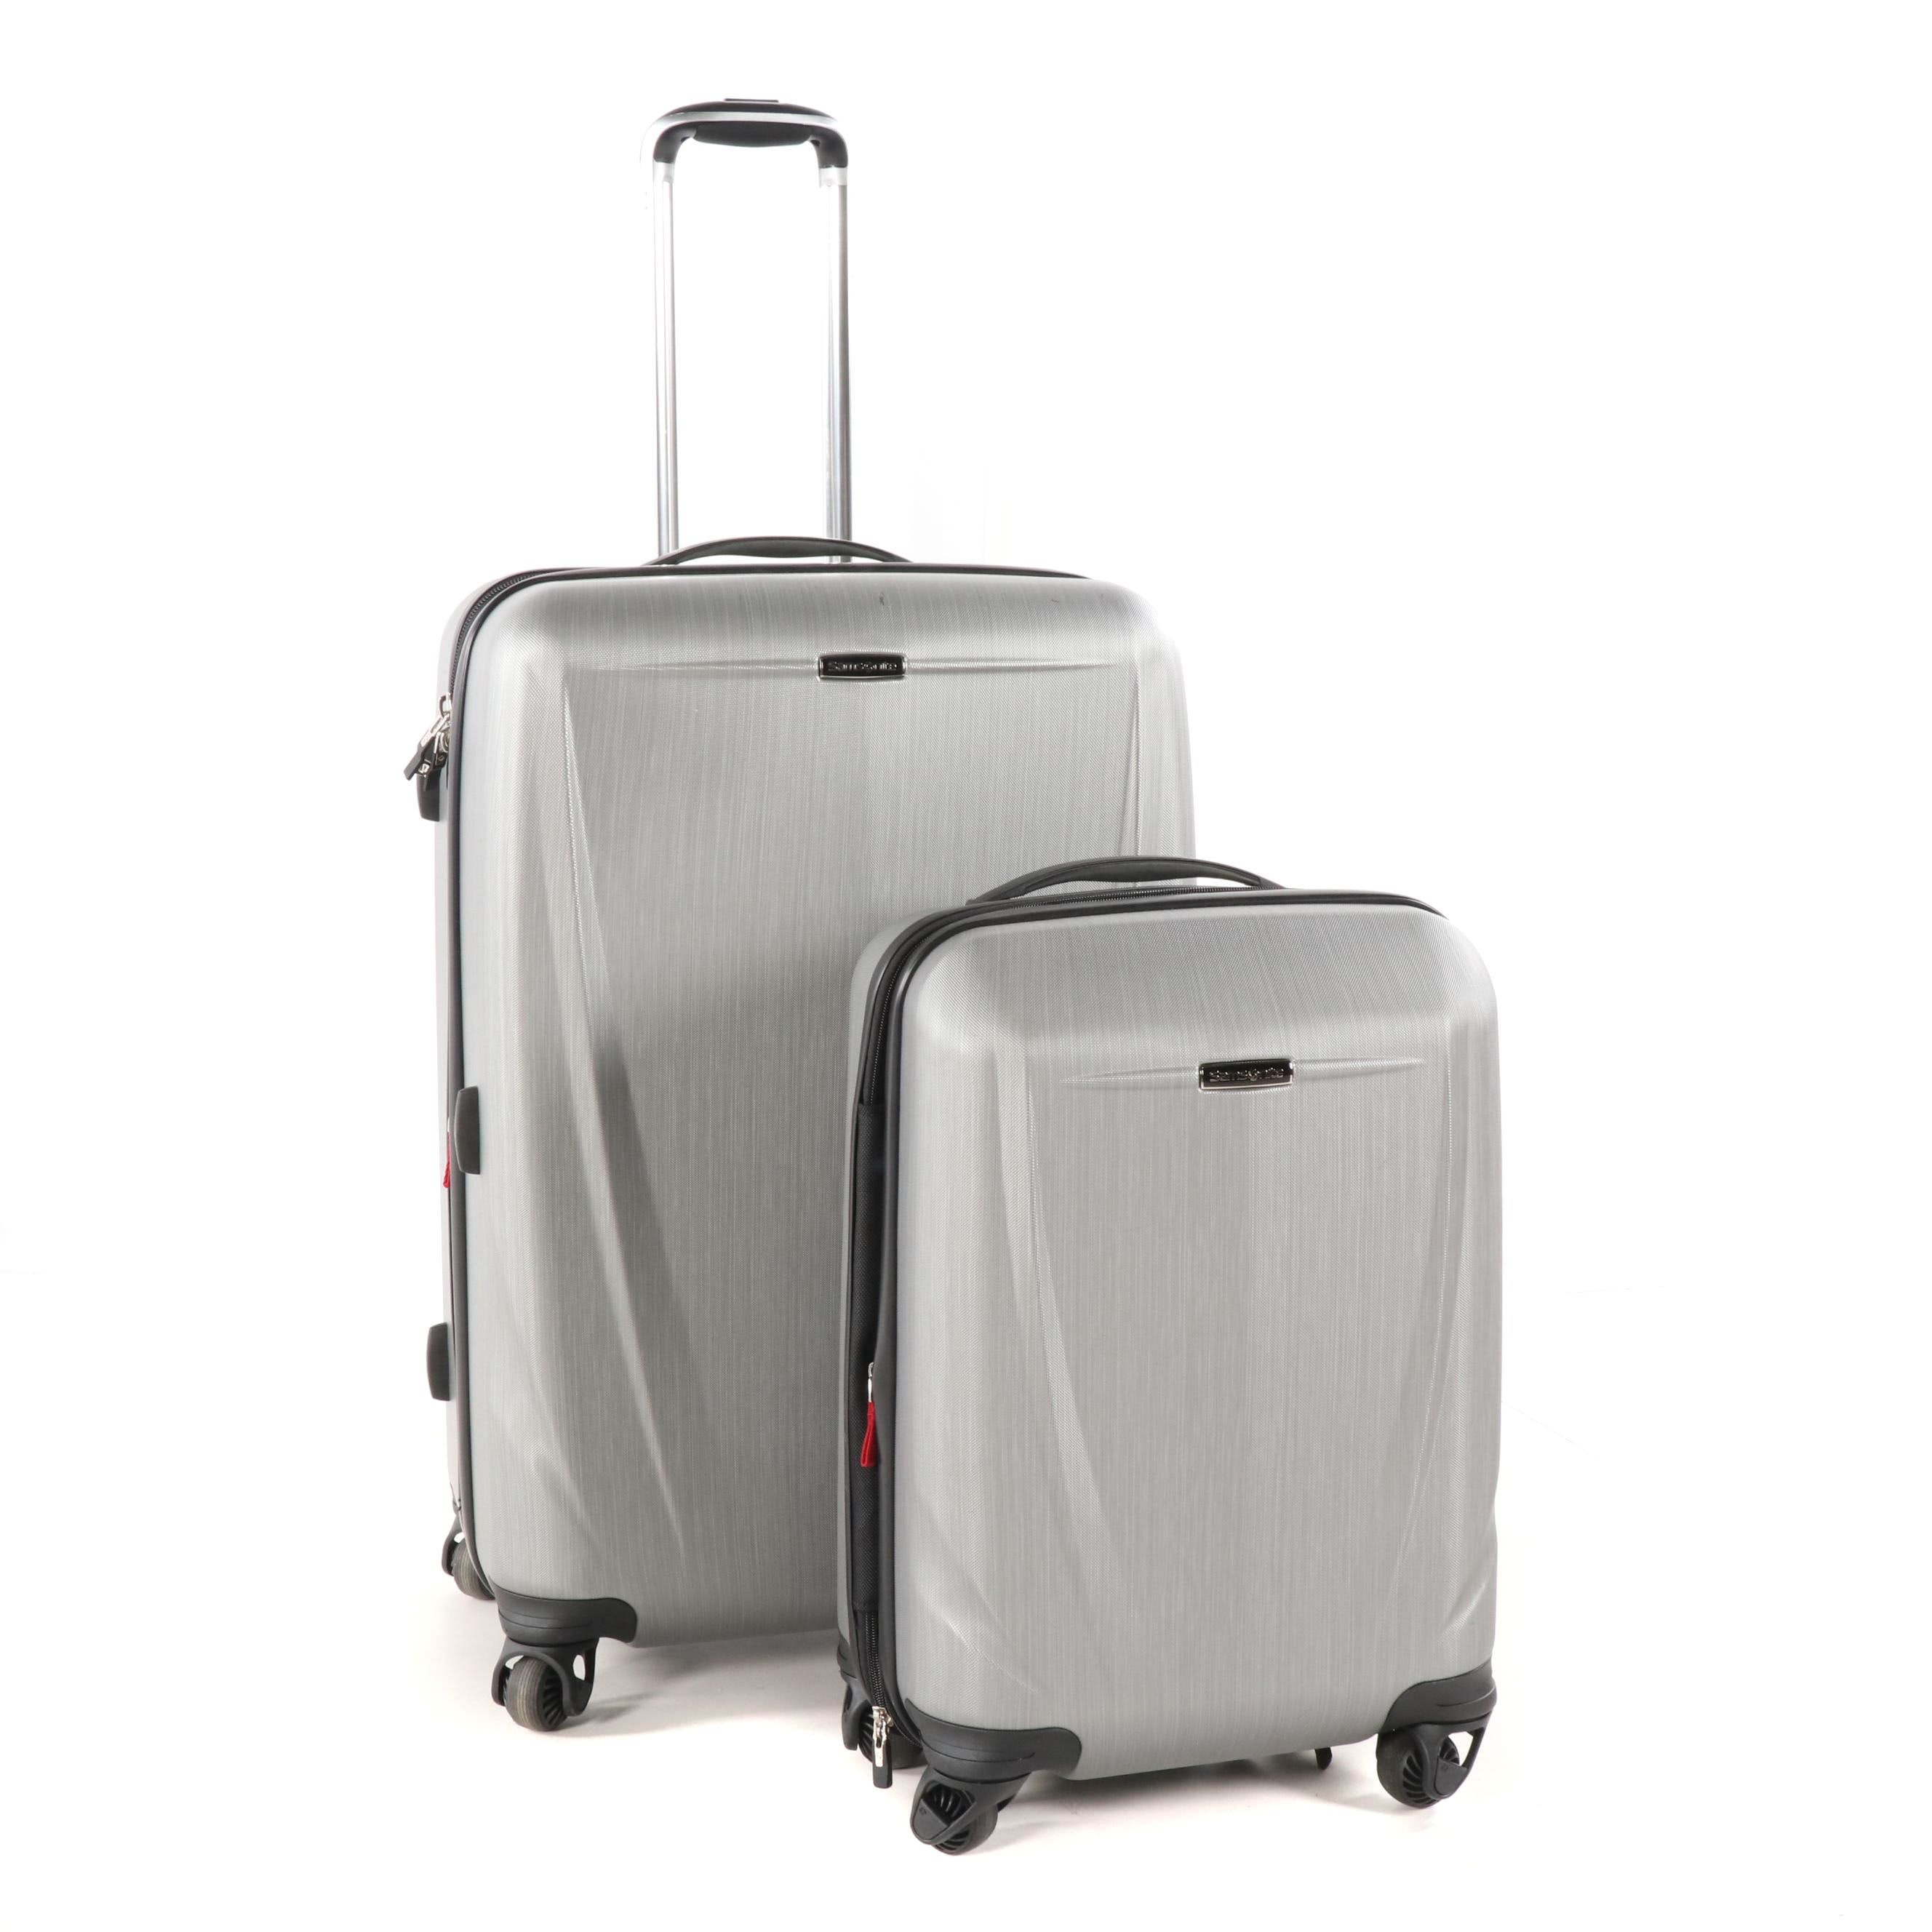 Samsonite Sphere DLX Grey Two-Piece Hardside Spinner Luggage Set